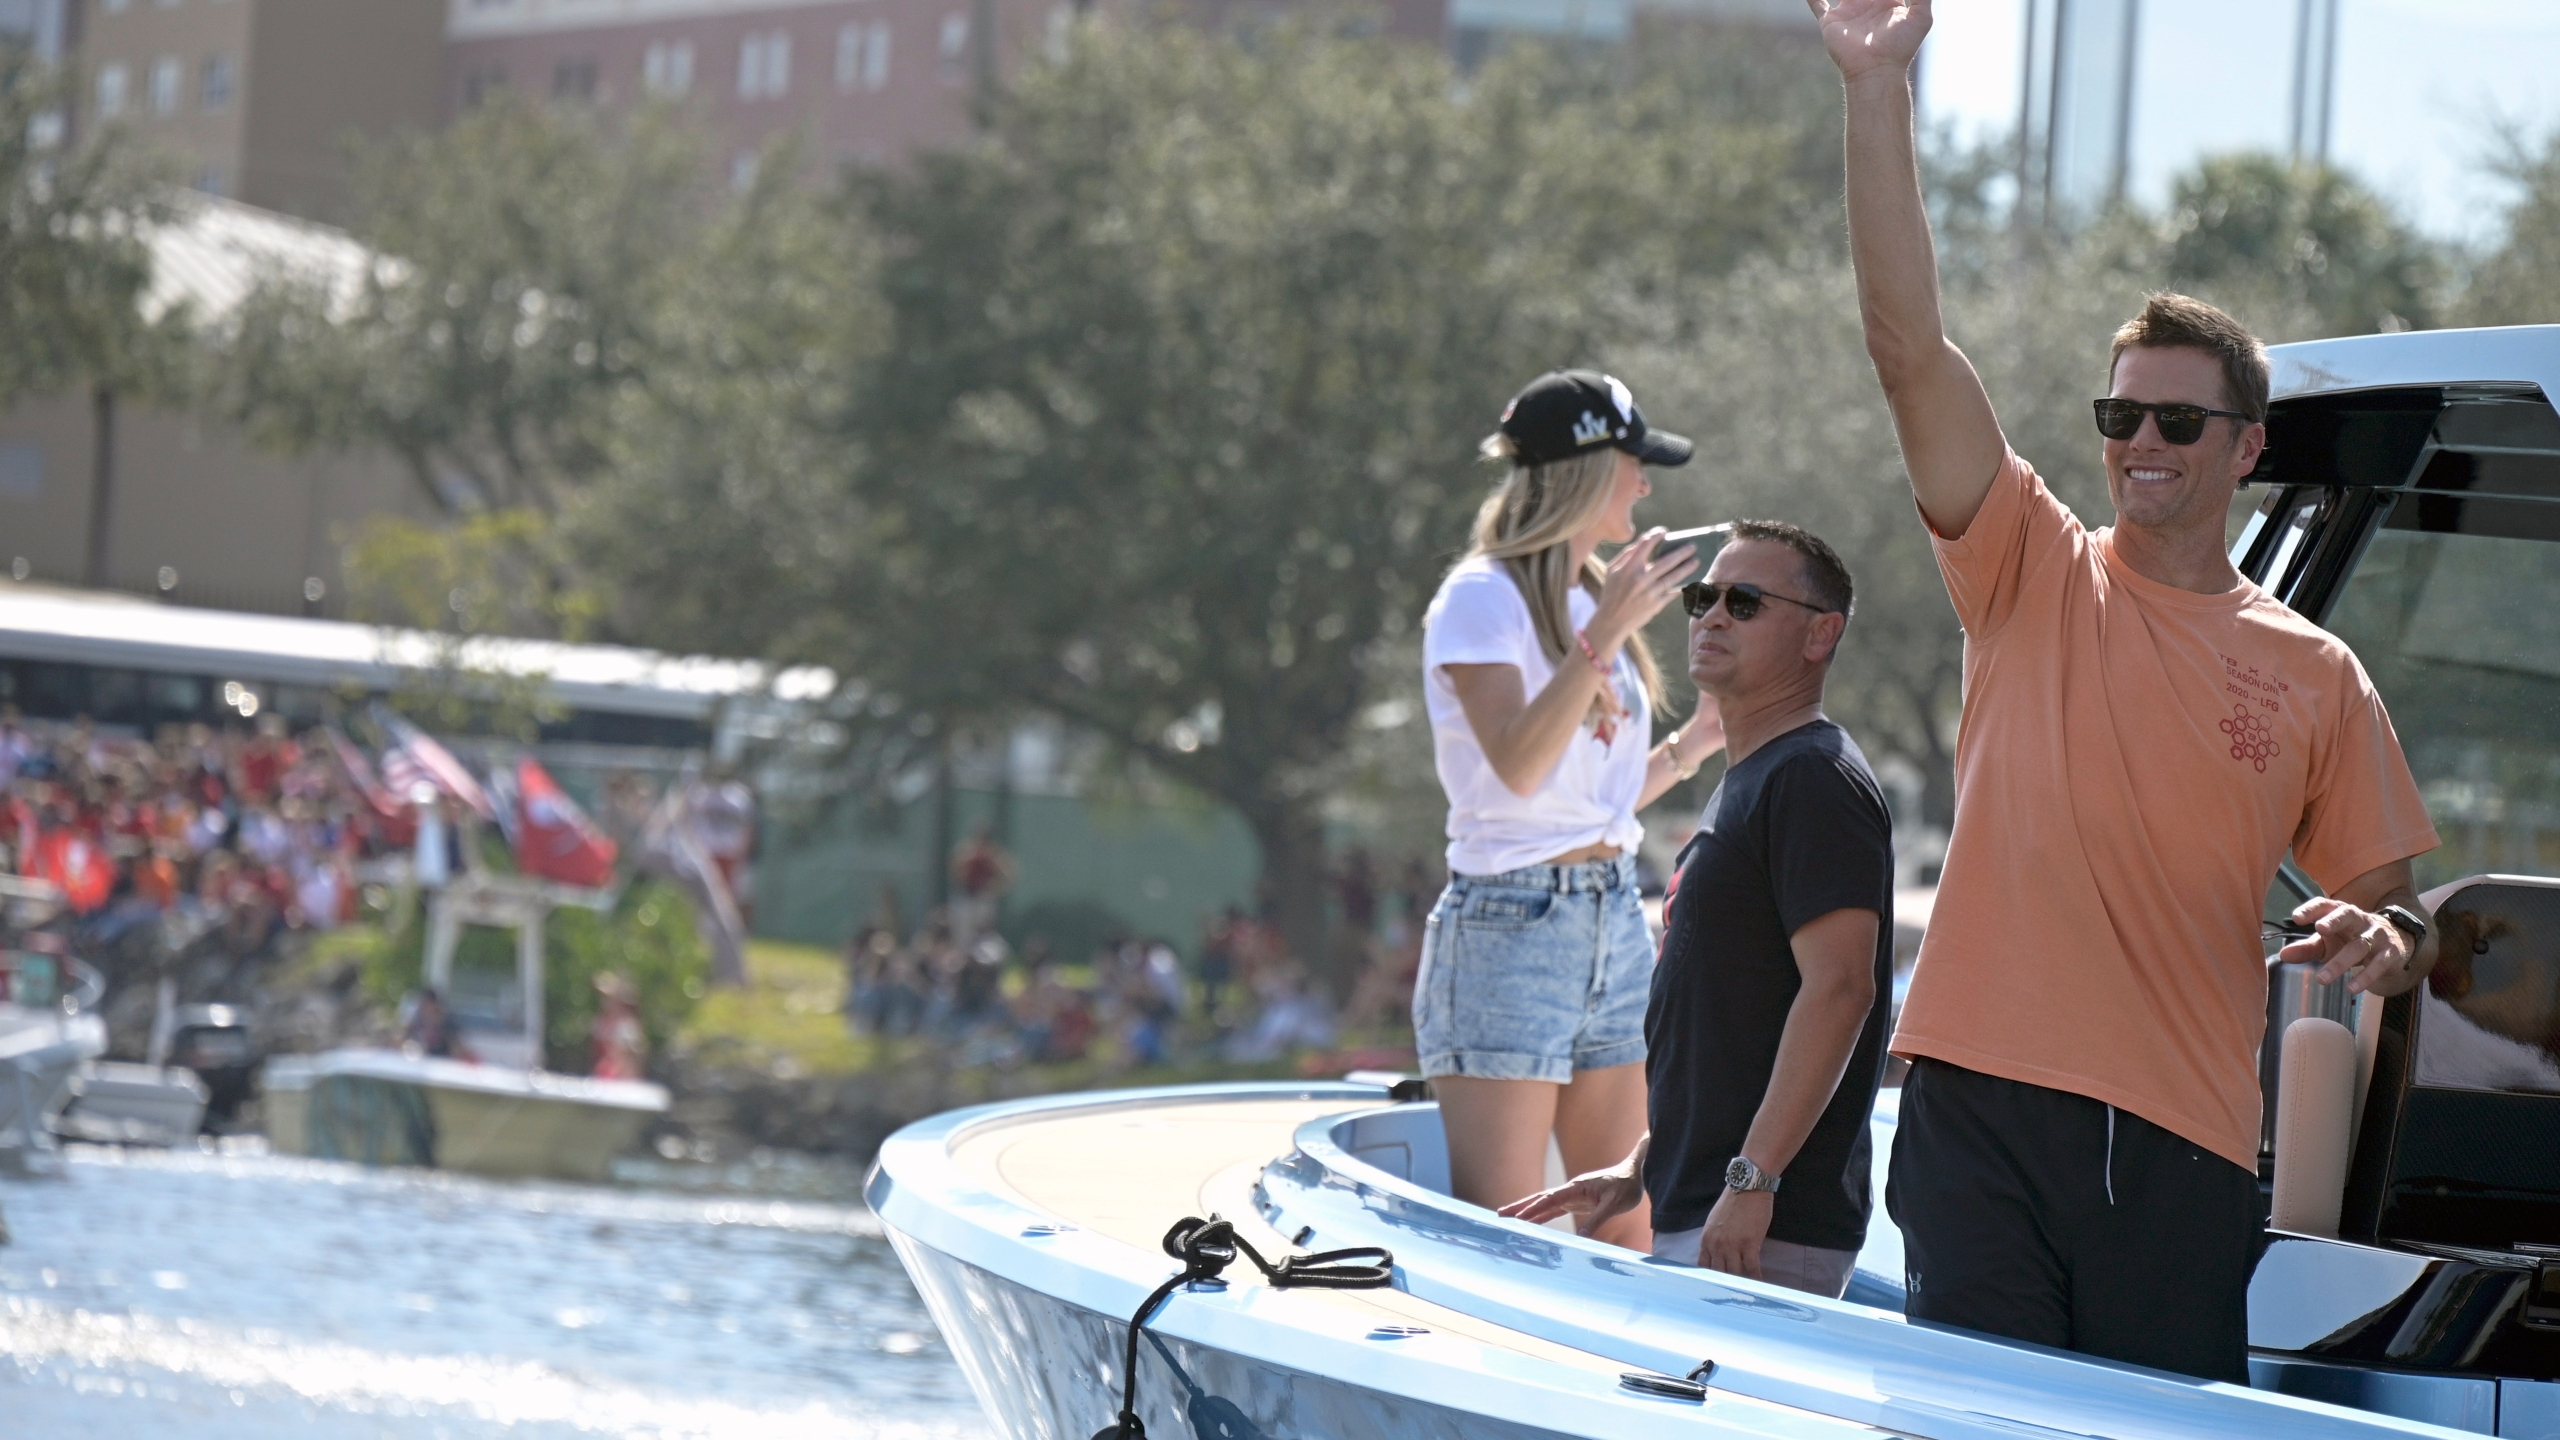 Tampa Bay Buccaneers NFL football quarterback Tom Brady waves to fans as he celebrates their Super Bowl 55 victory over the Kansas City Chiefs with a boat parade in Tampa on Feb. 10, 2021. (Phelan Ebenhack/Associated Press)